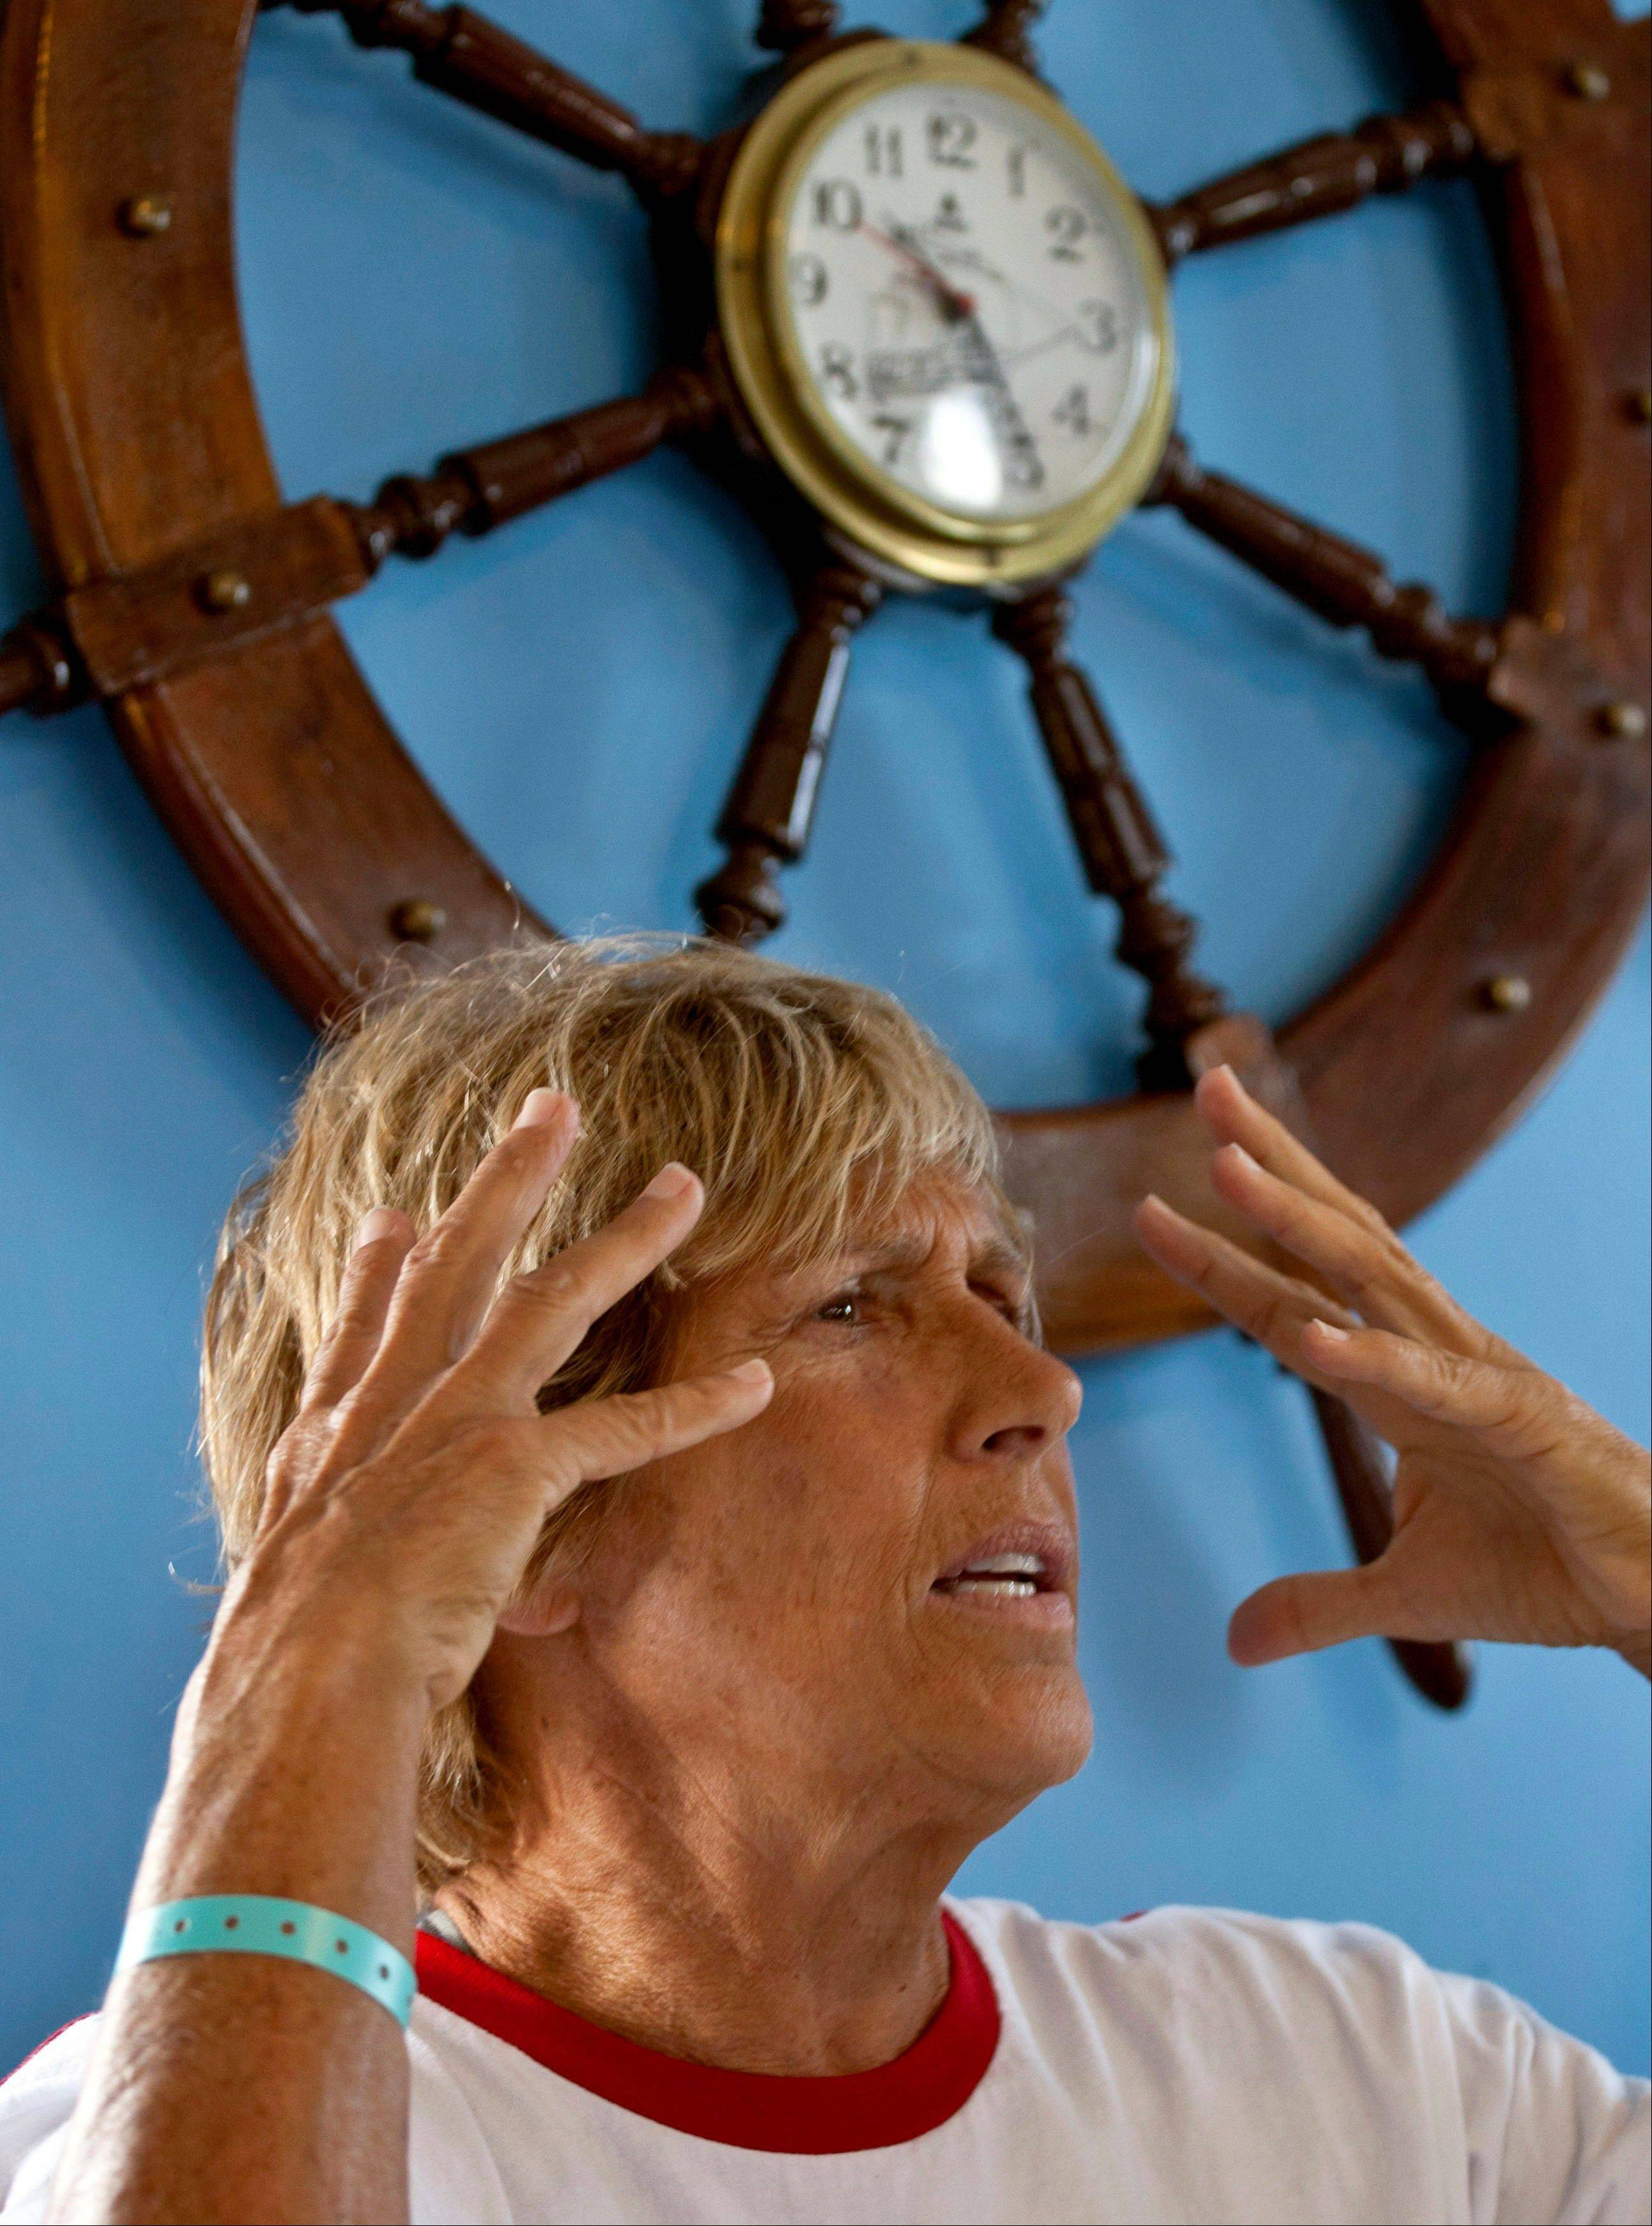 Associated Press U.S. swimmer Diana Nyad will make another attempt to swim across the Florida Straights without the protection of shark cage.